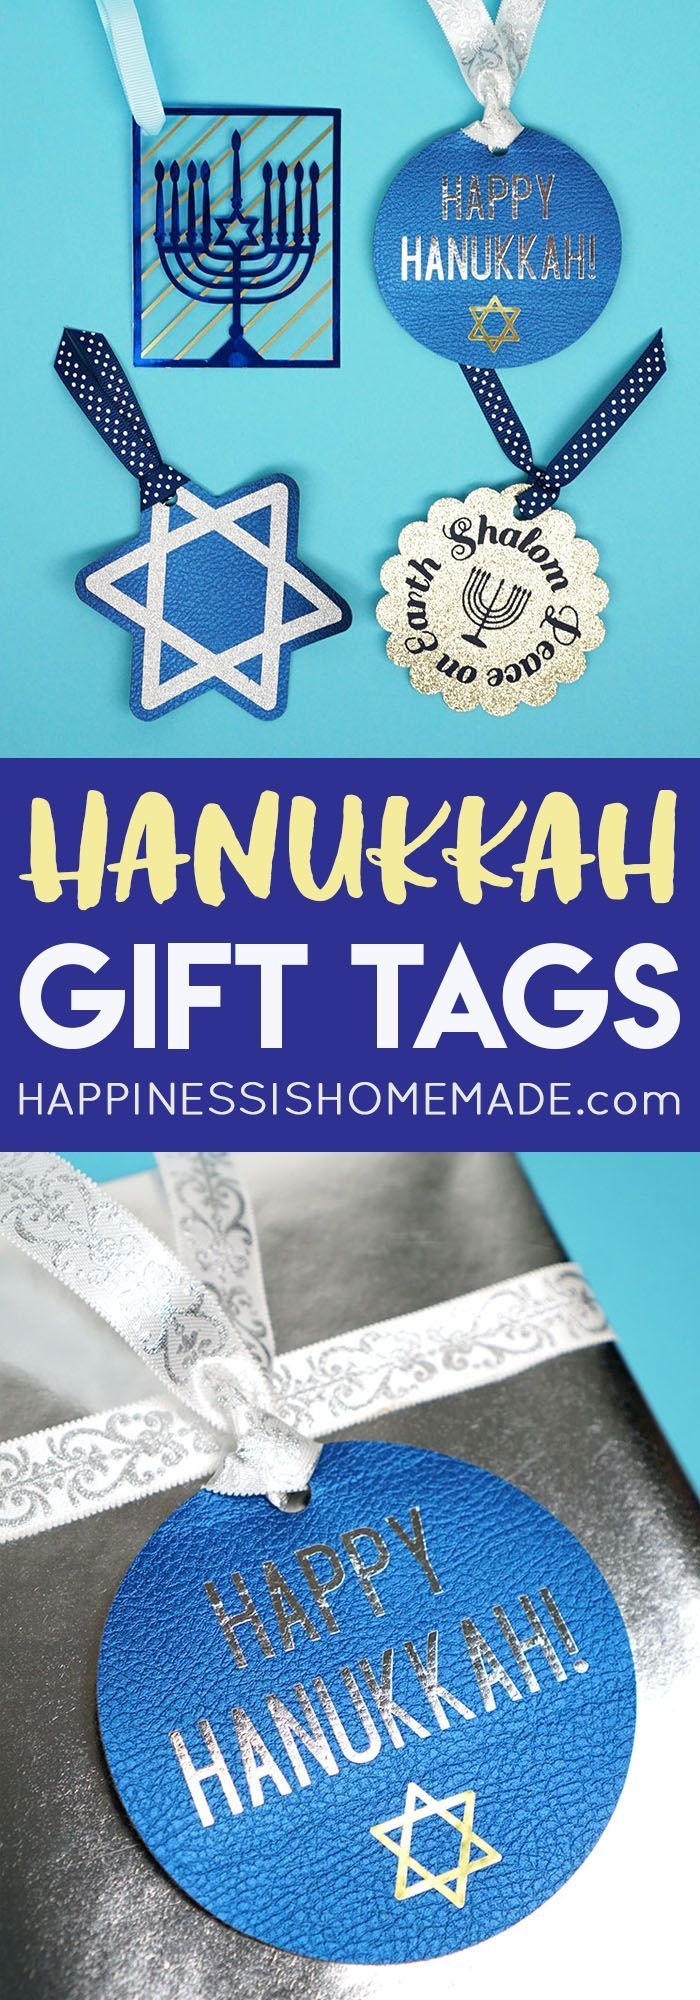 It's easy to add a touch of sparkle and shimmer to your holiday presents with these metallic, glitter, and leather Hanukkah gift tags!Get the cut file for Cricut Design Space and start making your own gift tags for all of your Hanukkah presents! via @hiHomemadeBlog #ad @Cricut #CricutMade #CricutHoliday